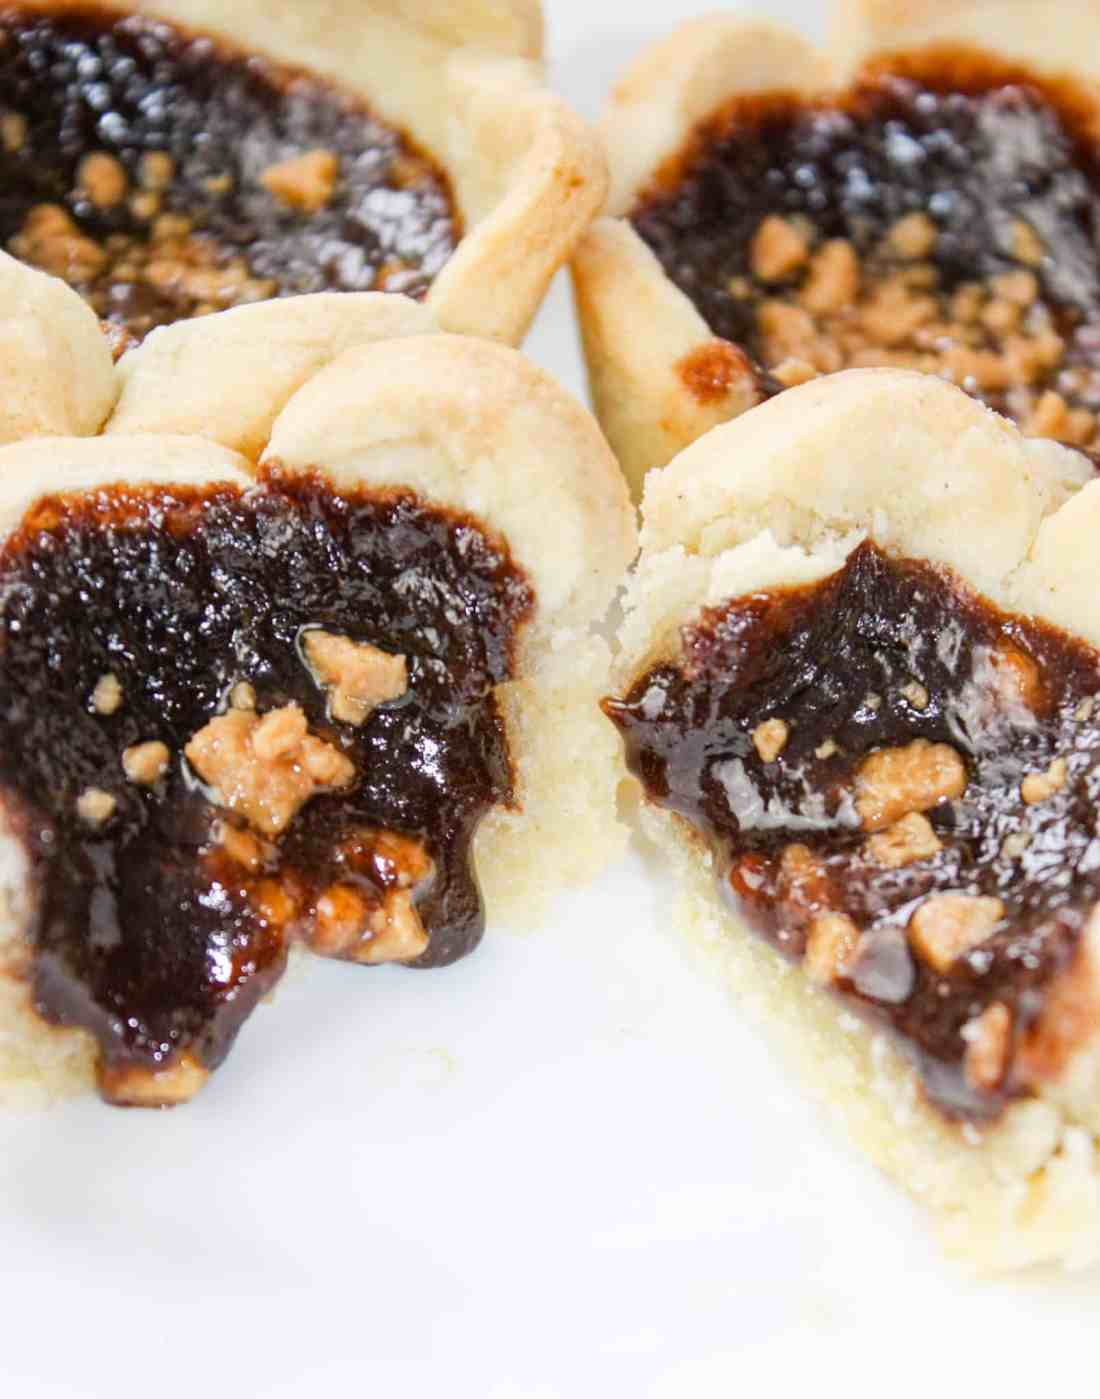 Skor Butter Tarts are a tasty variation of regular butter tarts.  This gluten free dessert pastry will be a hit with young and old alike.